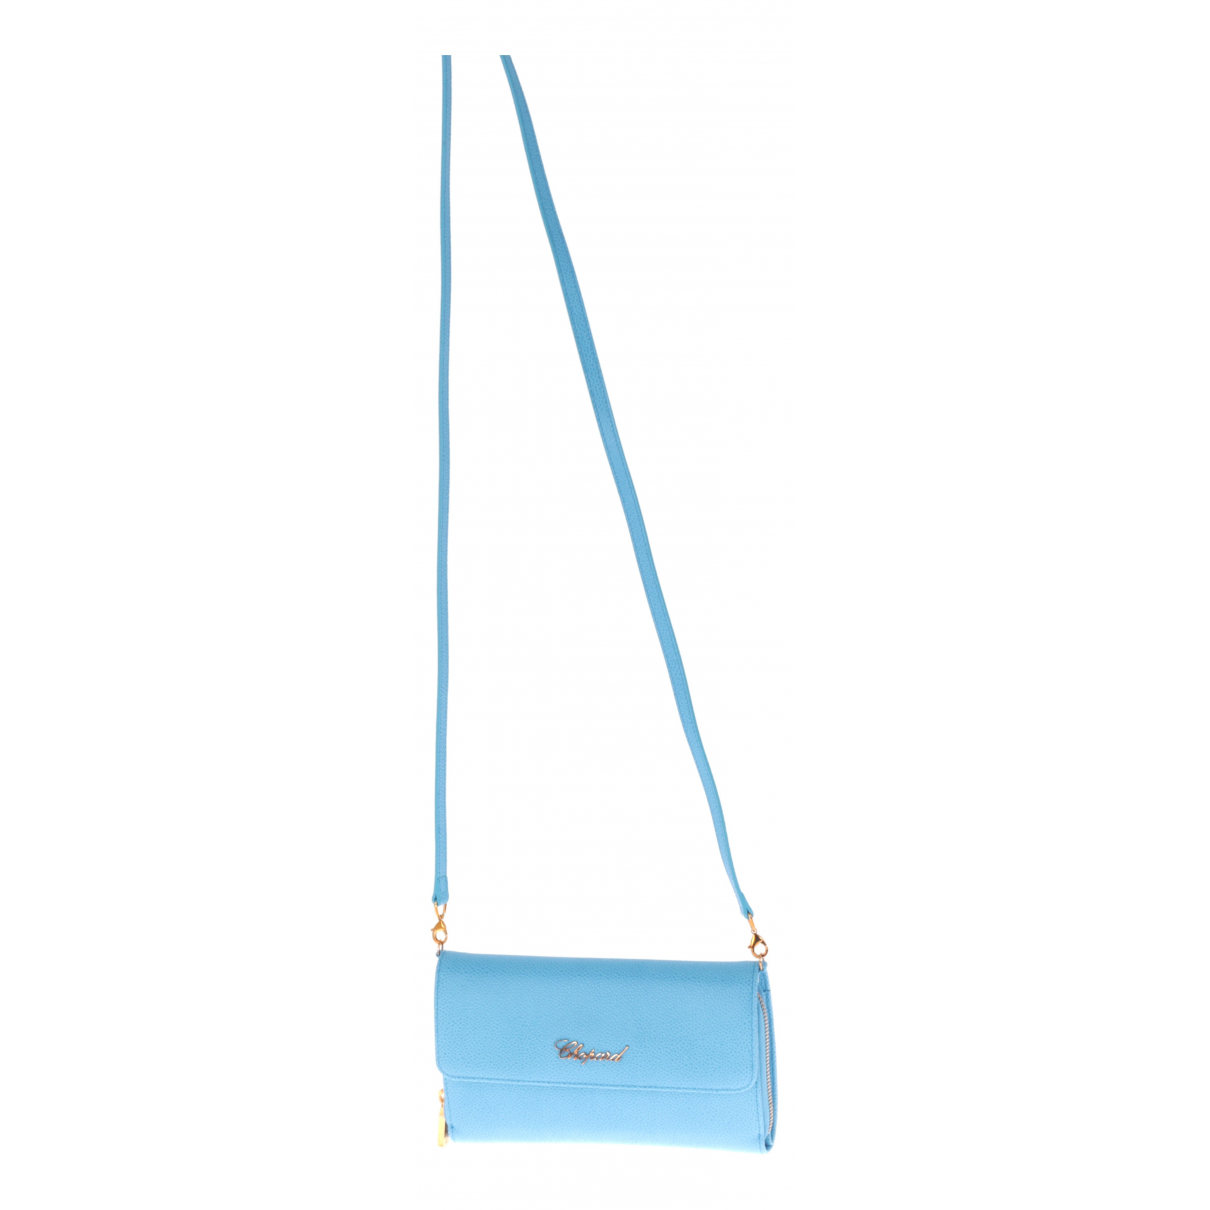 Chopard \N Turquoise Leather handbag for Women \N